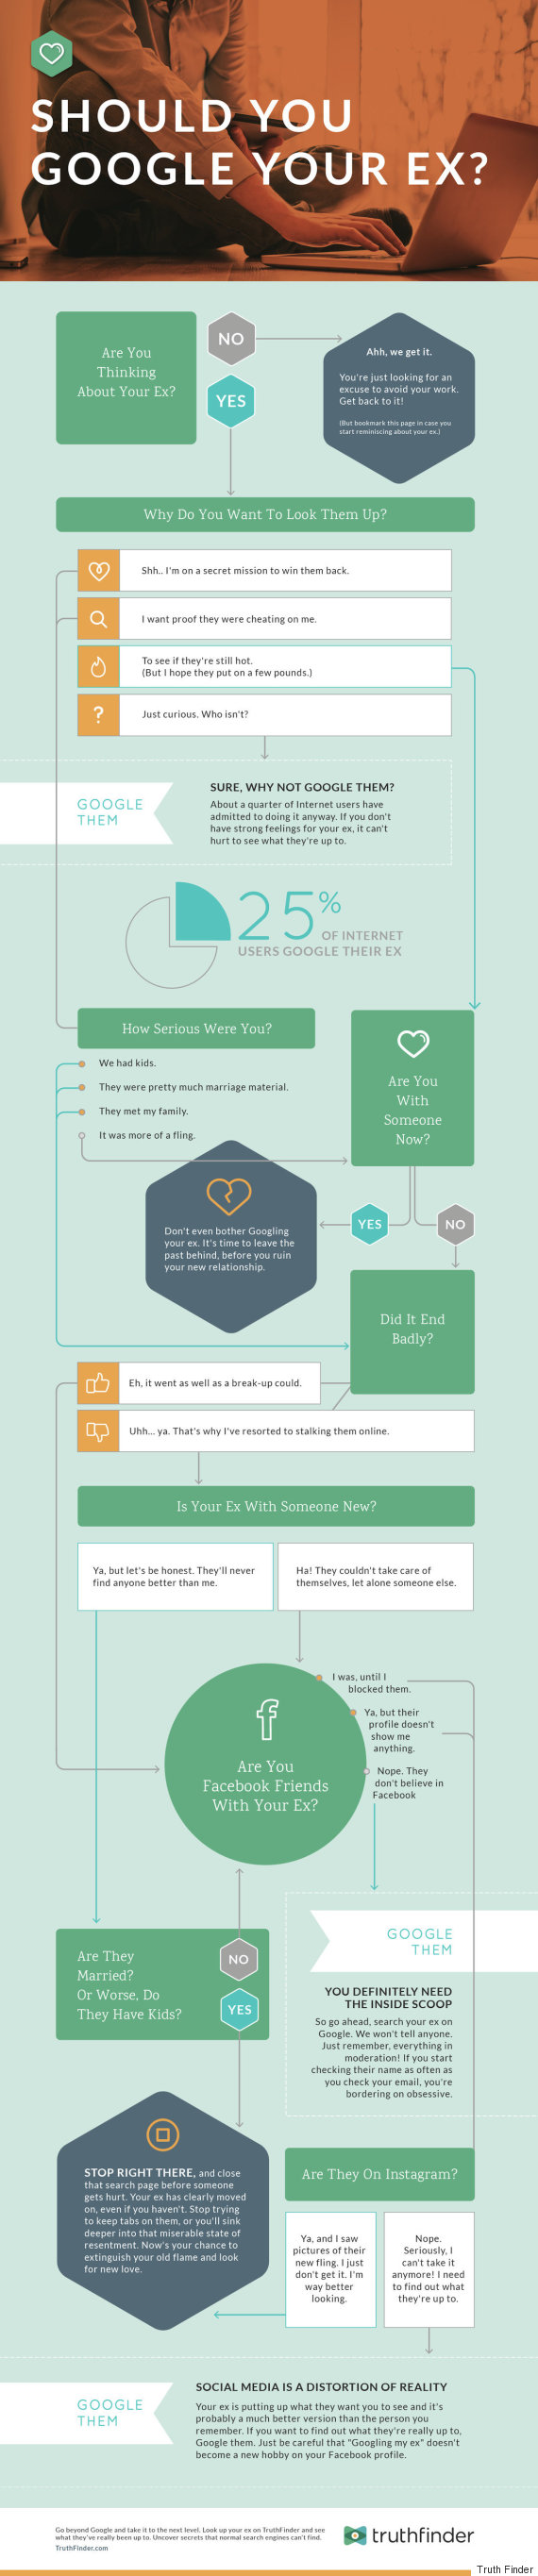 should you google your ex